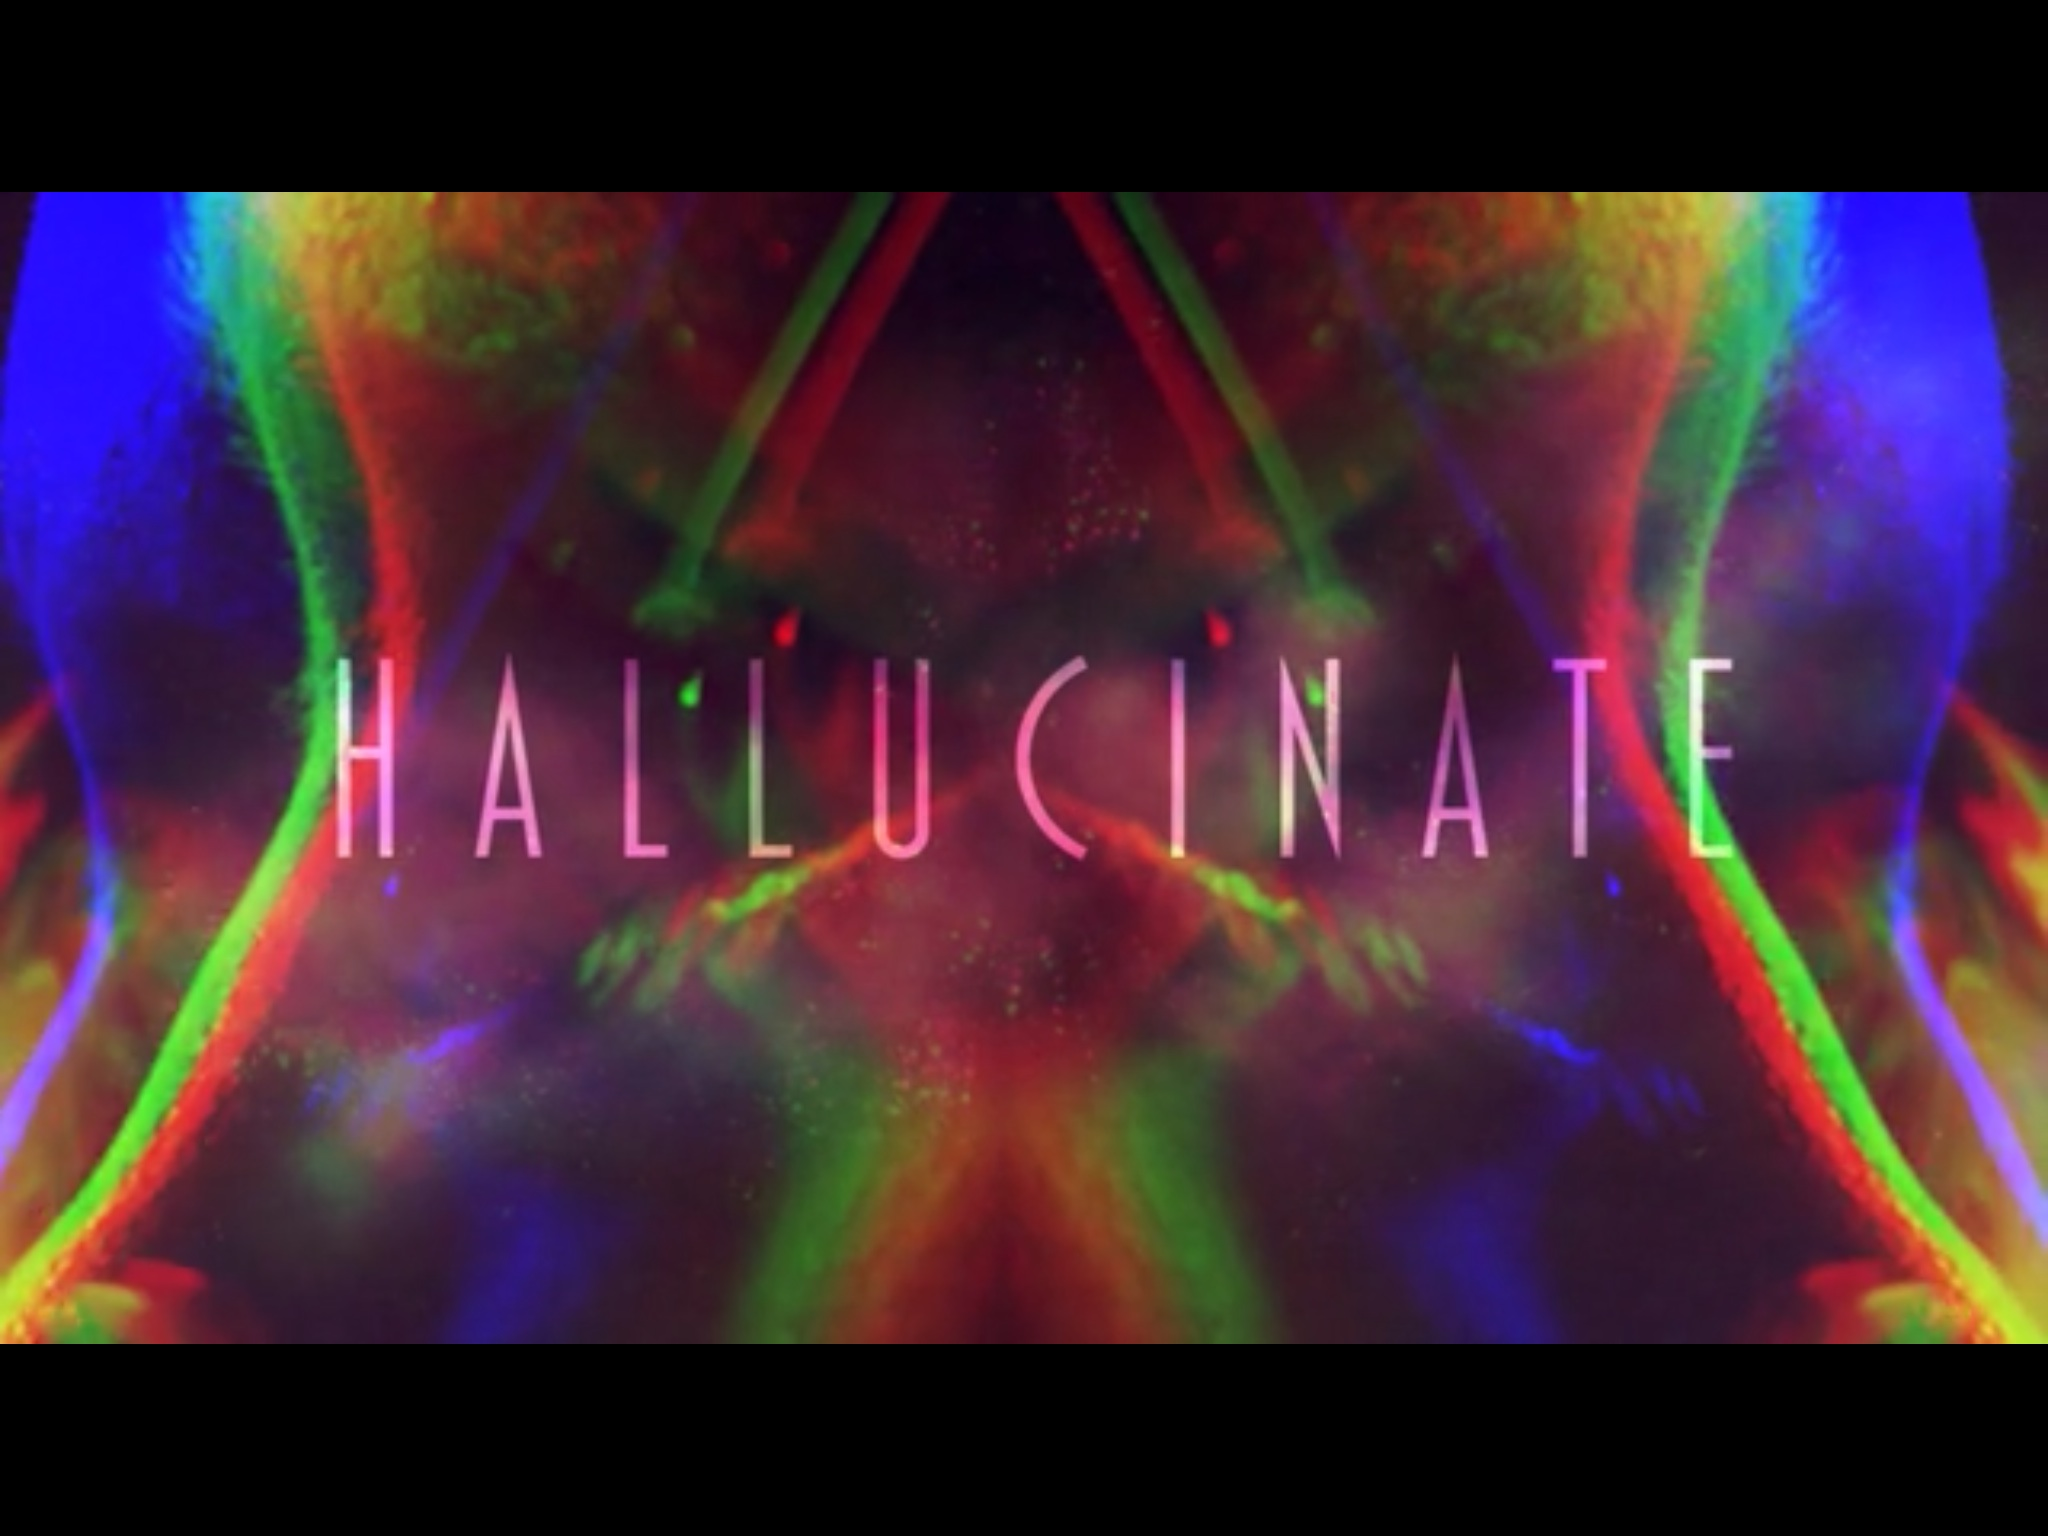 The Grindhouse: Hallucinate intro.